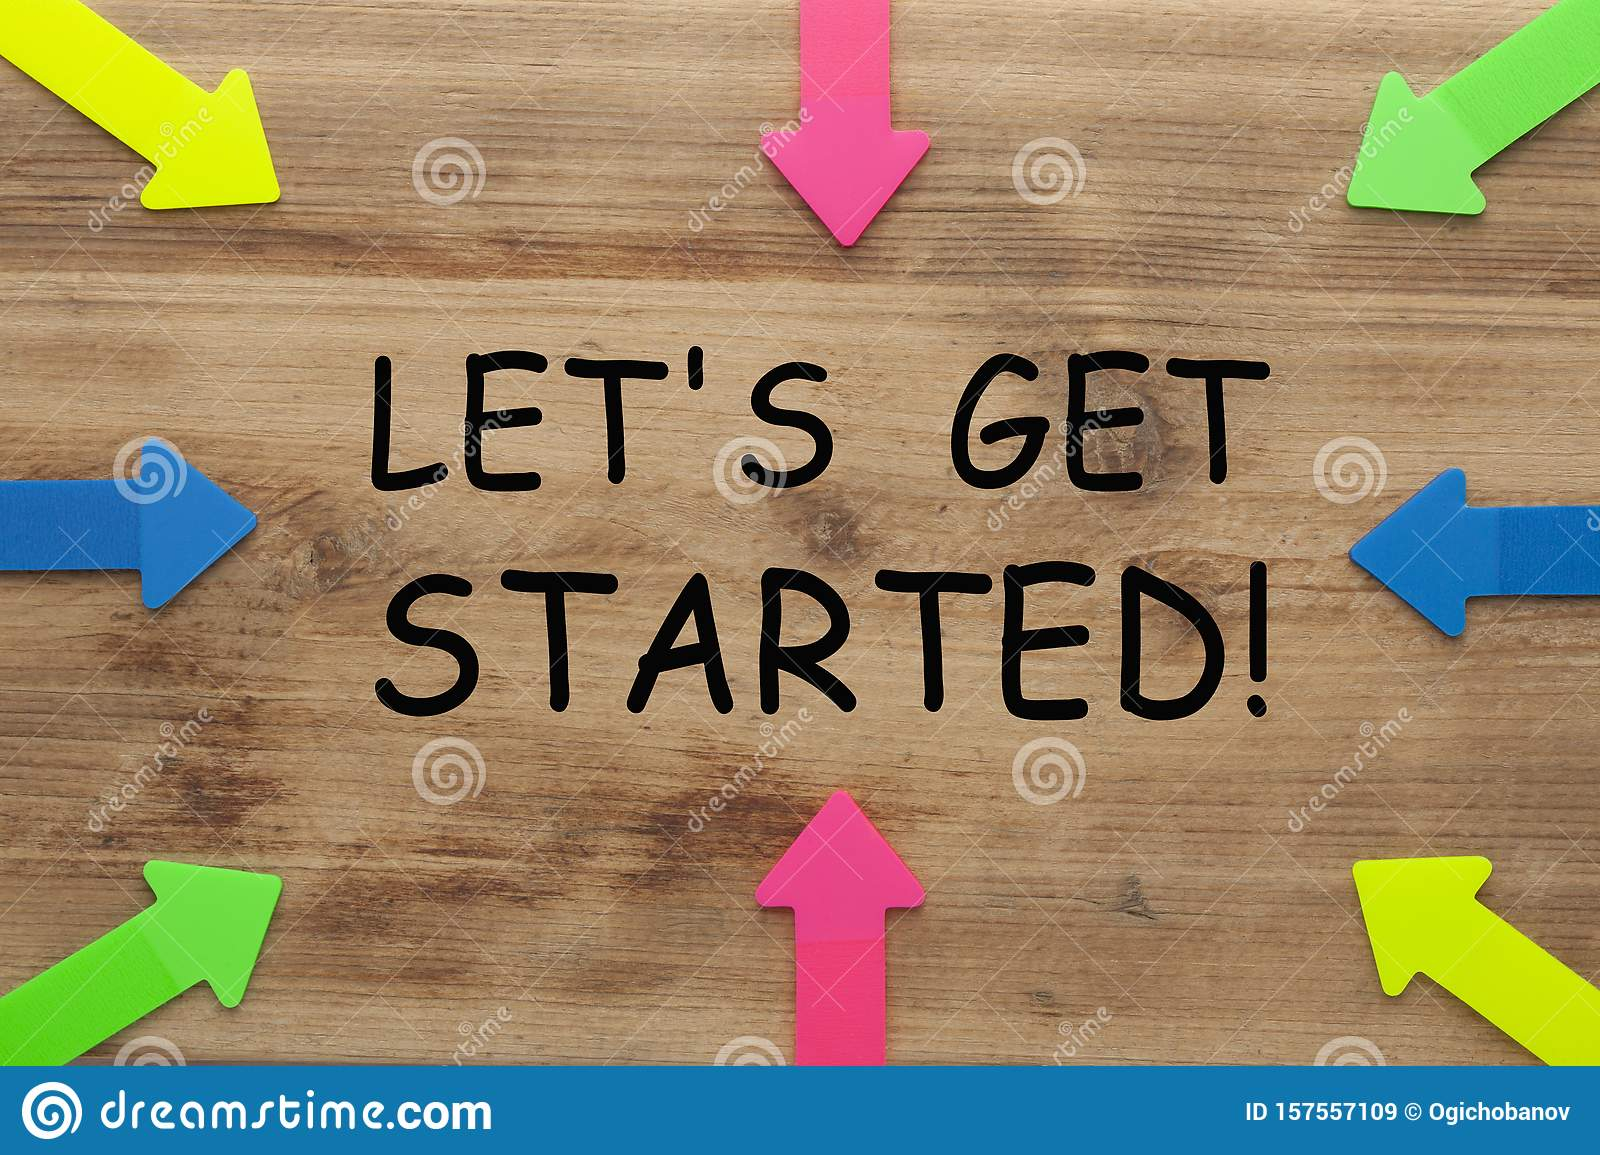 10 Let's Get Started Photos   Free & Royalty Free Stock Photos ...